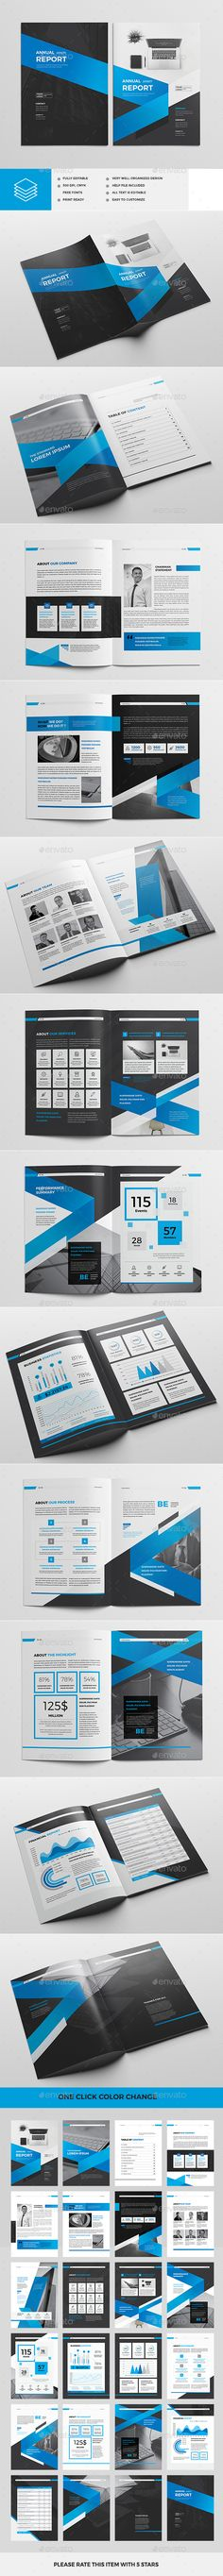 Annual Report Brochure Template InDesign INDD